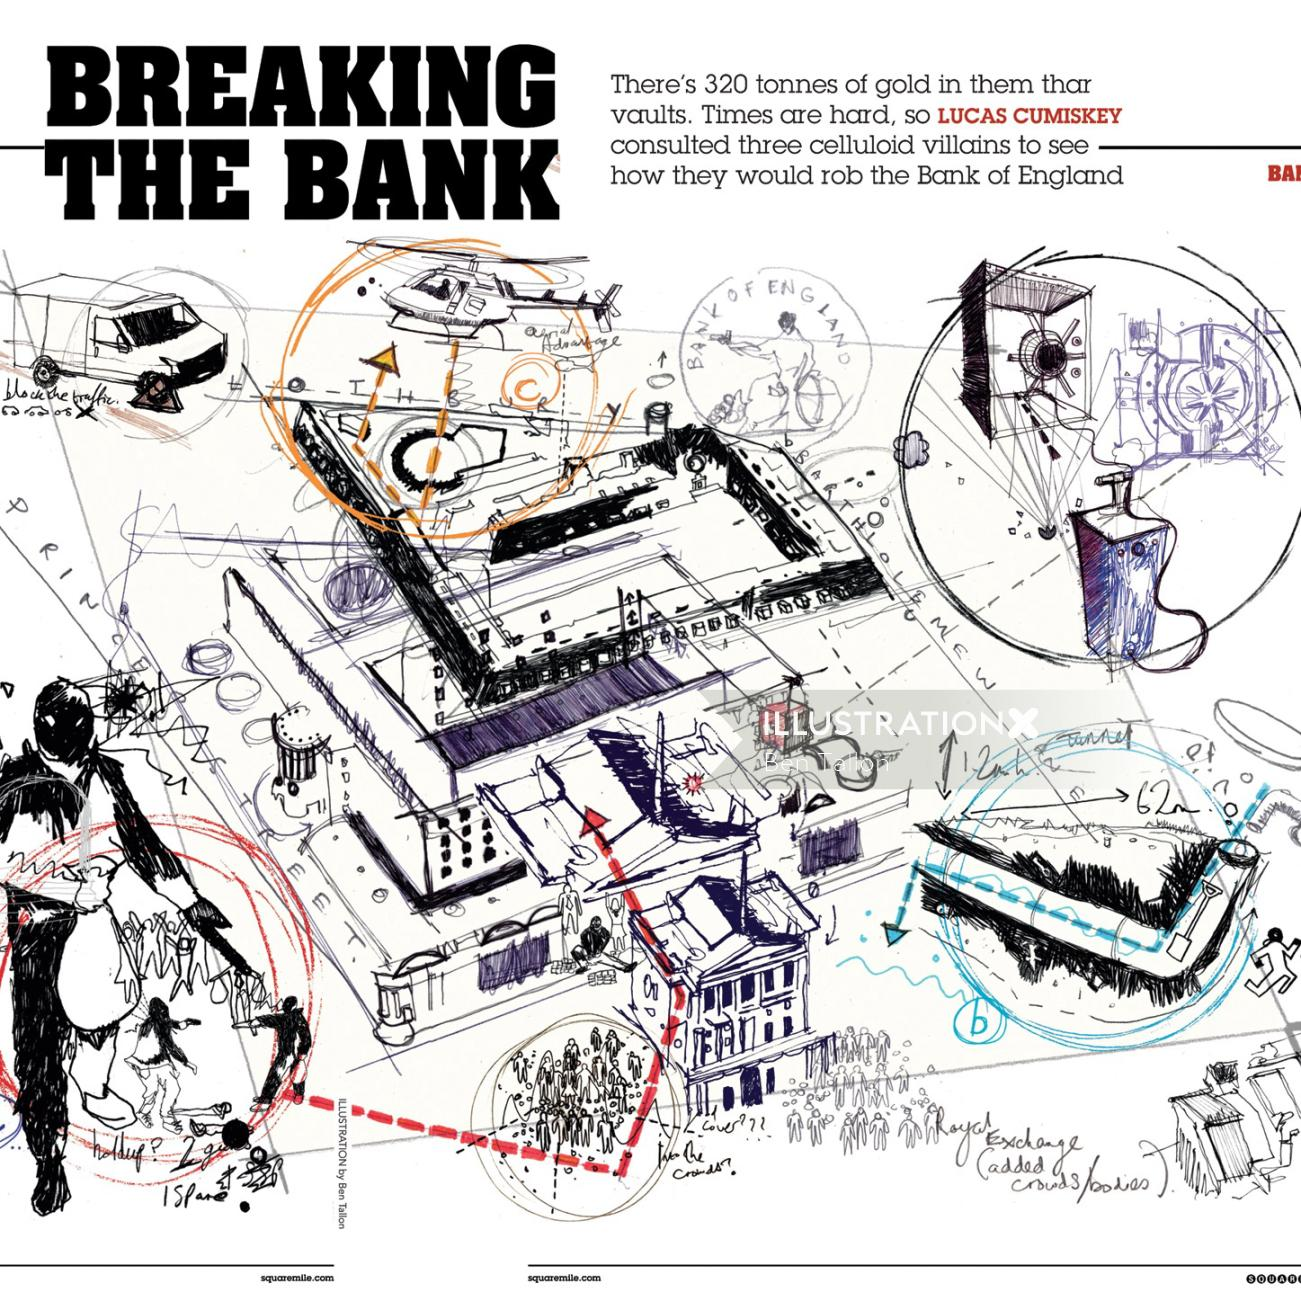 Strategy for Robbing the Bank